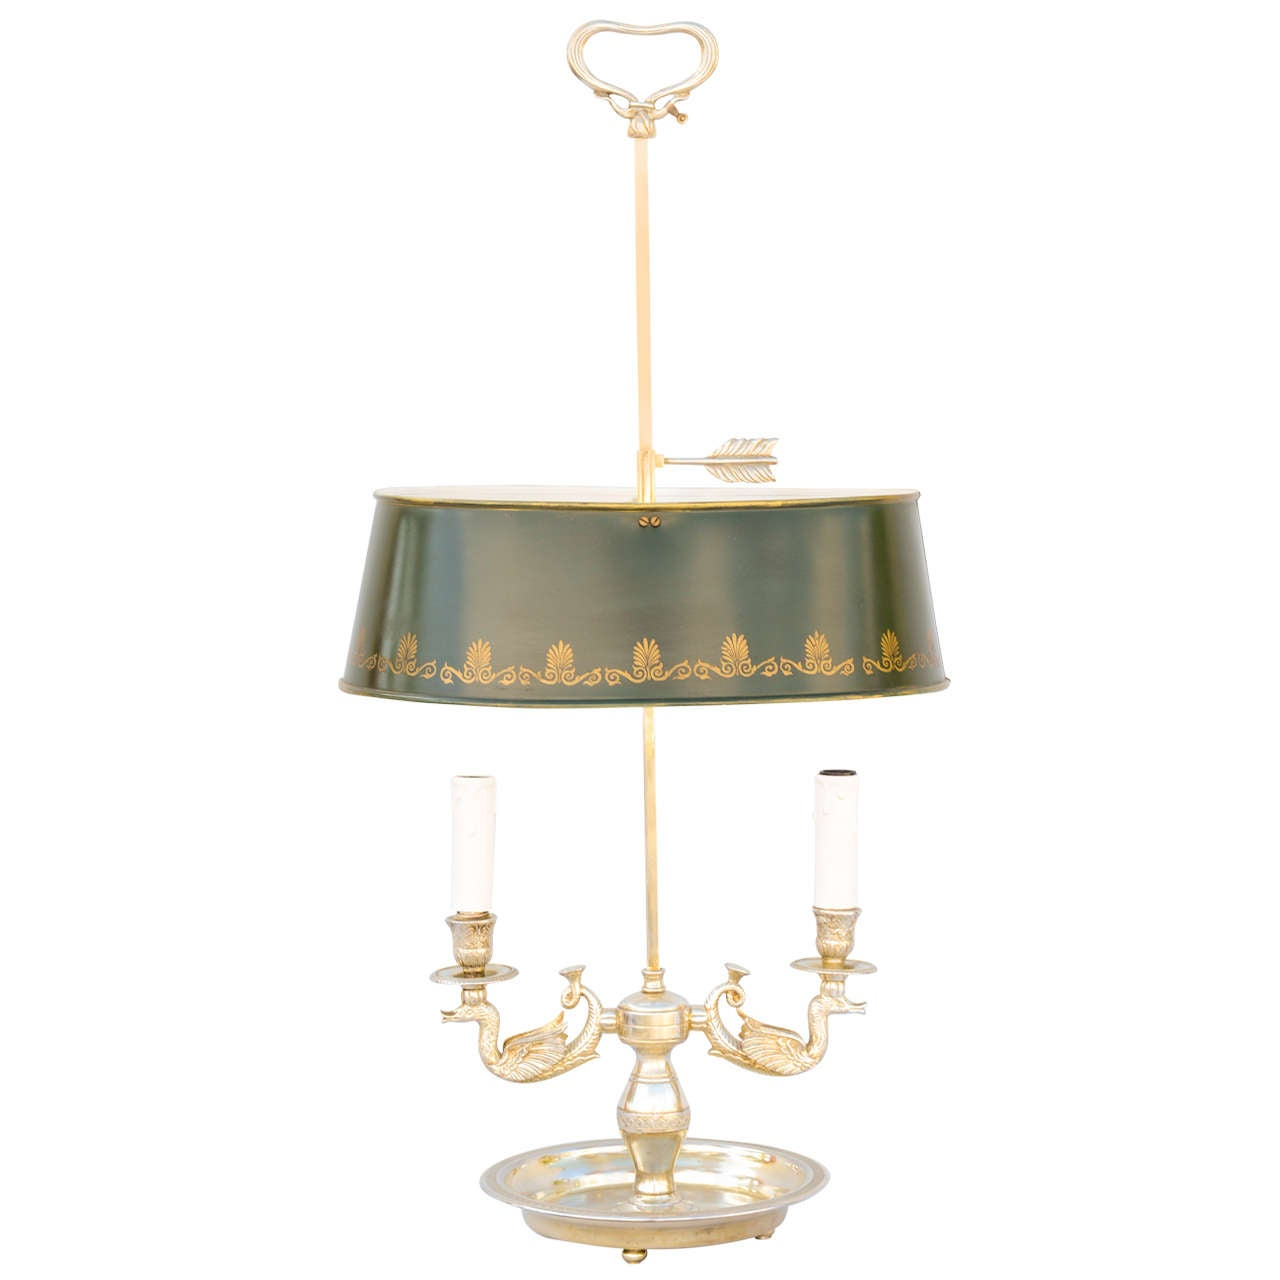 Silverplate Bouillotte Lamp With Oval Tole Shade For Sale